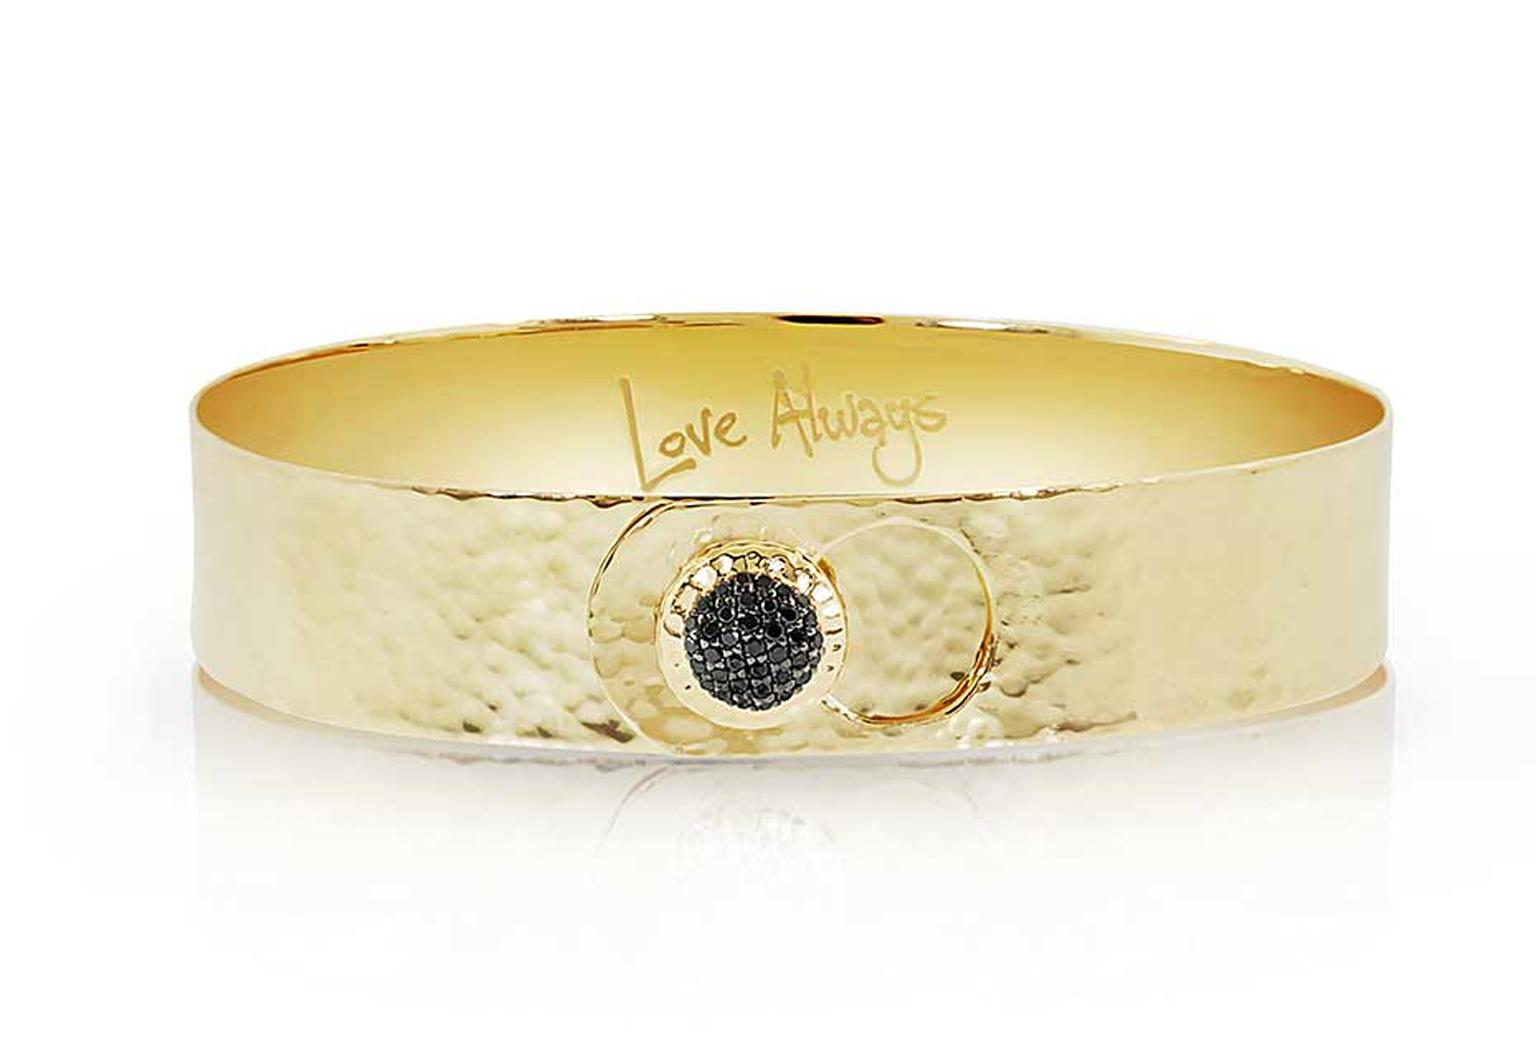 Phillips House Love Always gold bracelet featuring a black diamond ($4,100).